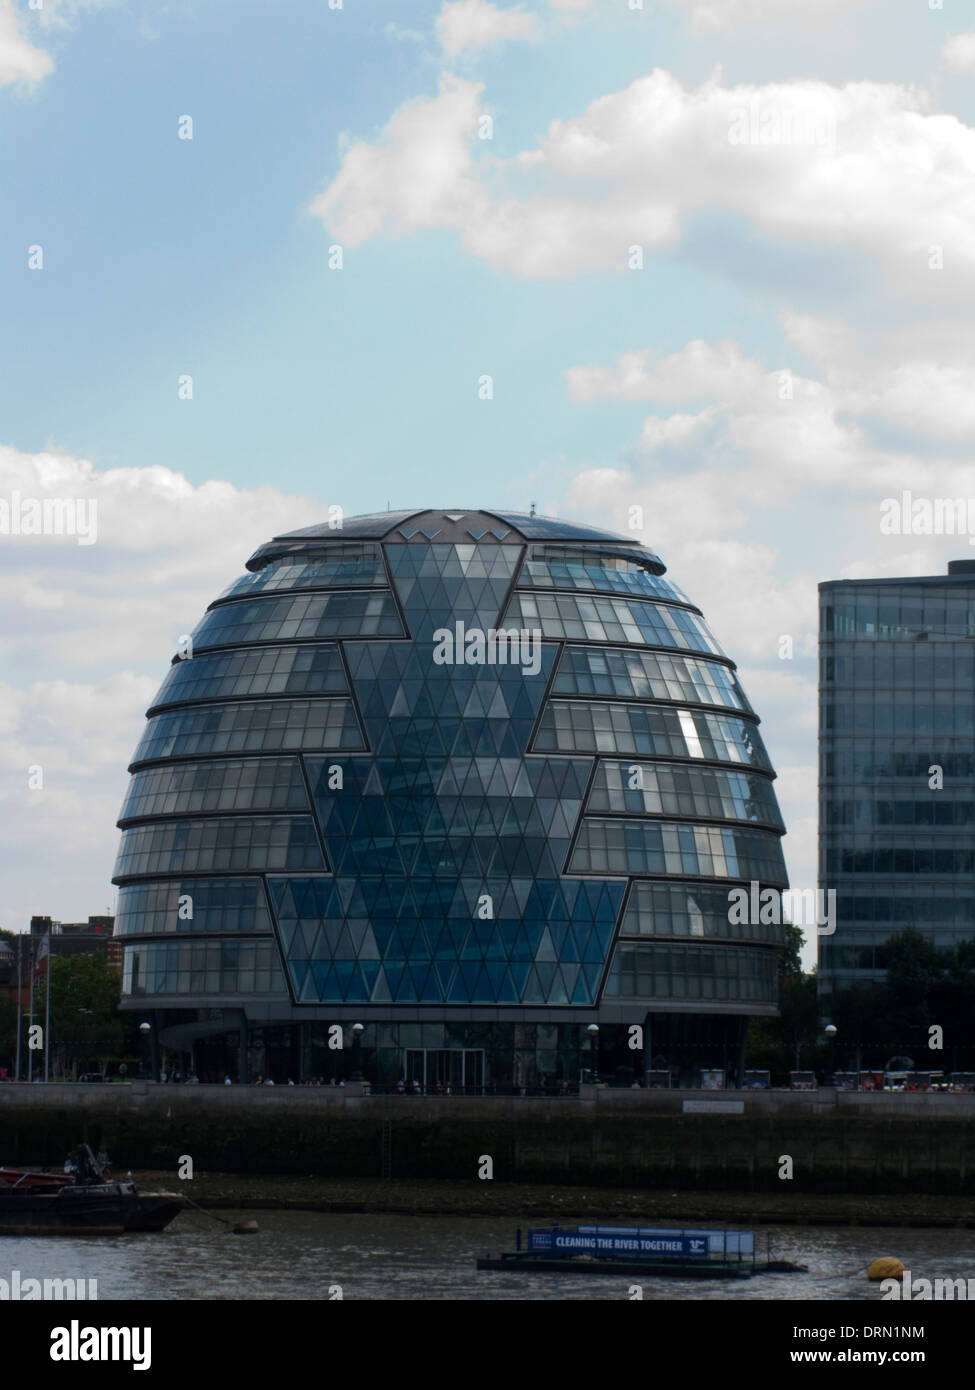 City Hall building beside River Thames, London, UK - Stock Image